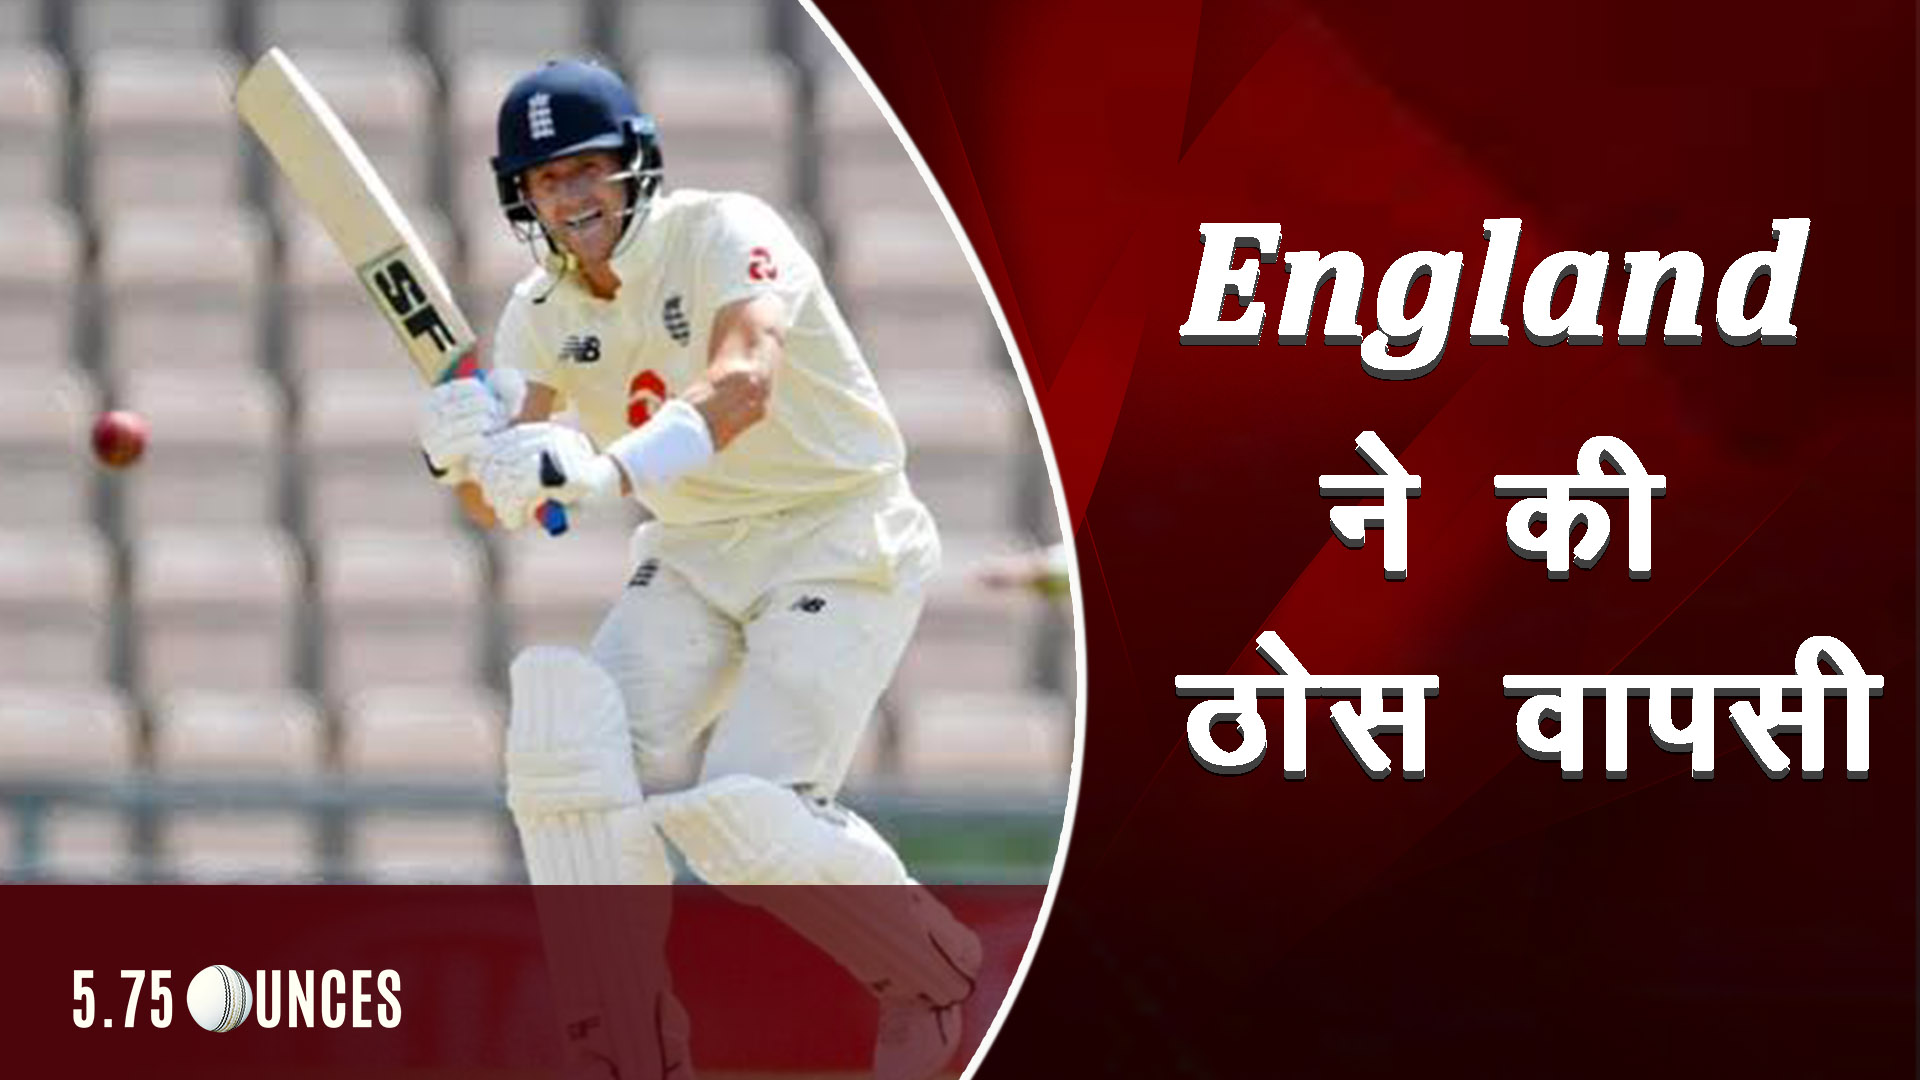 England vs West Indies 1st Test Day 4 analysis